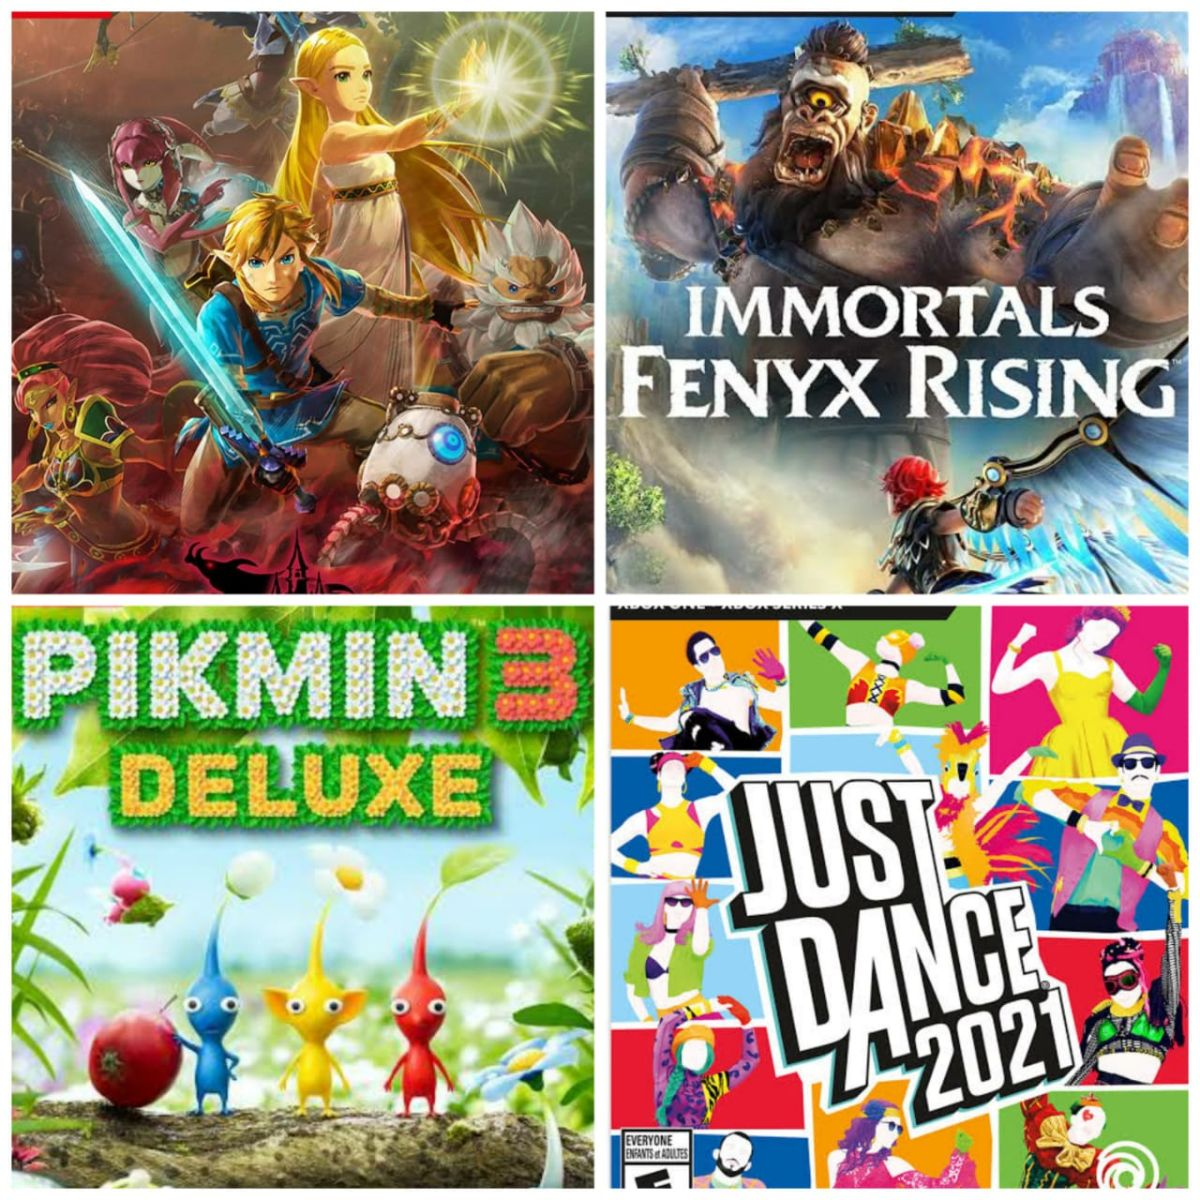 Reseña: Immortals: Fenyx Rising, Pikmin 3 Deluxe Edition, Zelda Hyrule Warriors Age of Calamity y Just Dance 2021